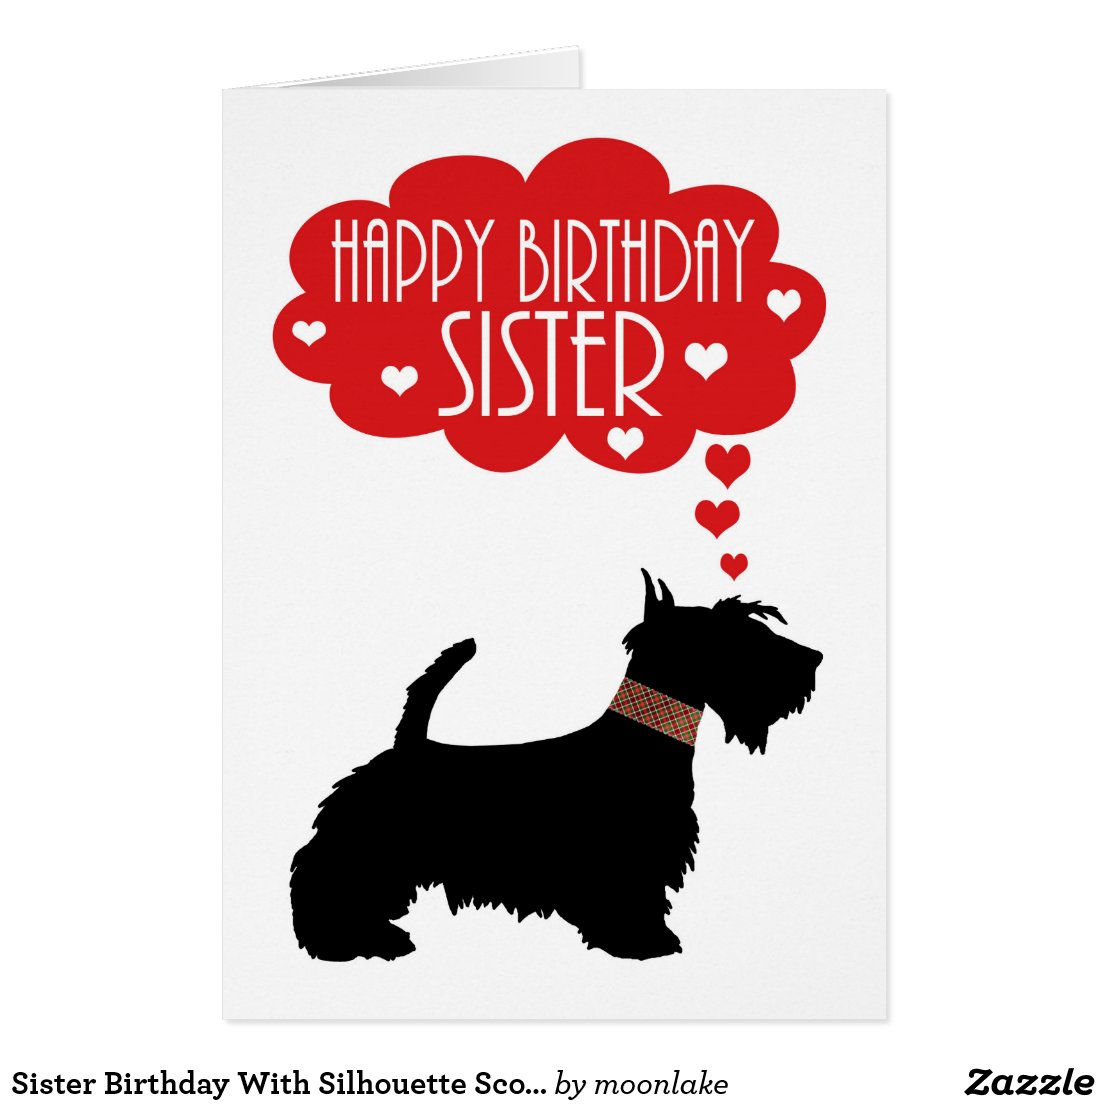 Sister Birthday With Silhouette Scottish Terrier